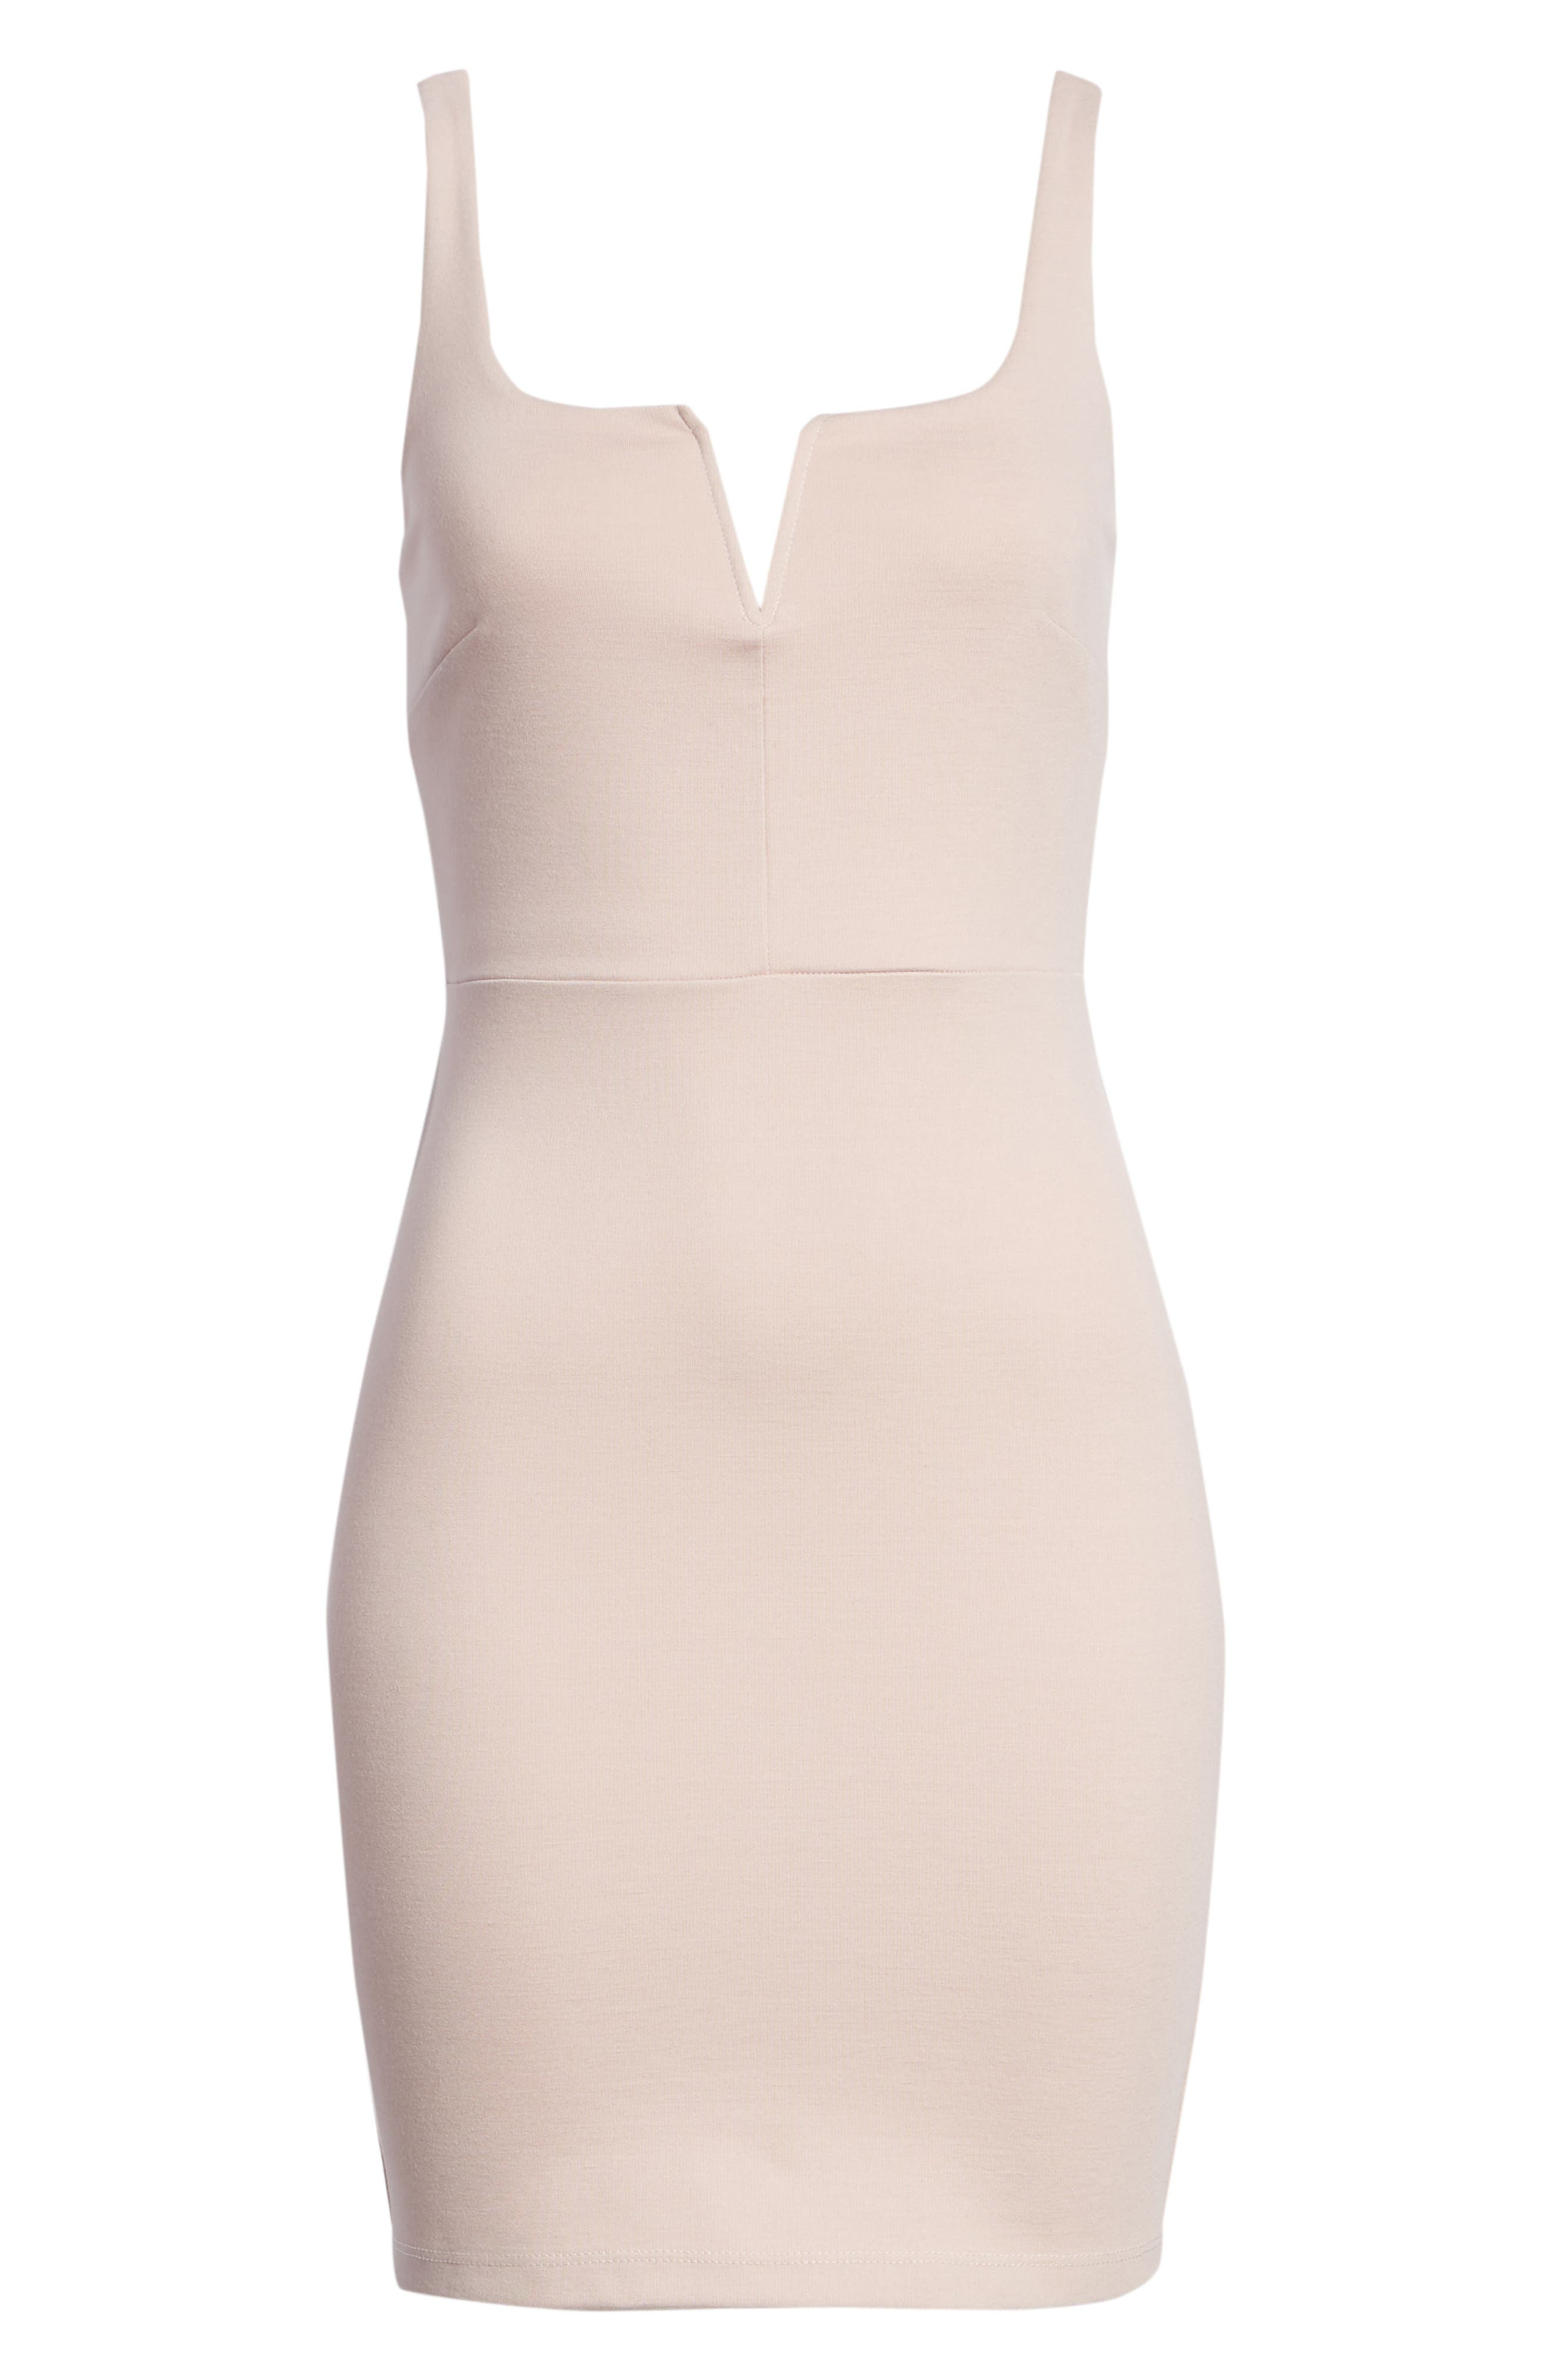 Body-Con Minidress,                             Alternate thumbnail 7, color,                             Dusty Rose